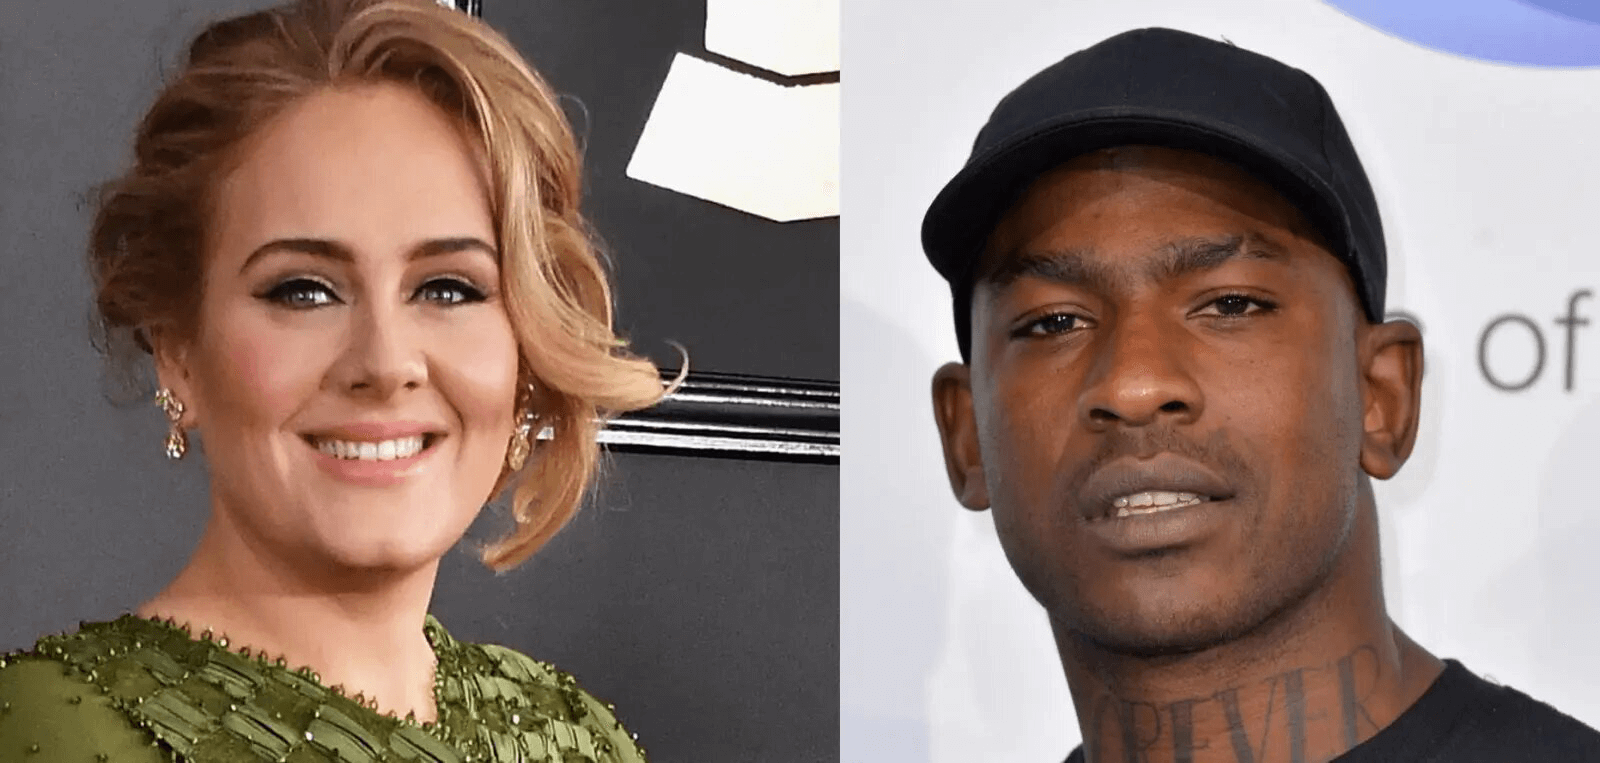 adele-and-skepta-dating-nigeria-debt-man-united-premier-league-style-rave